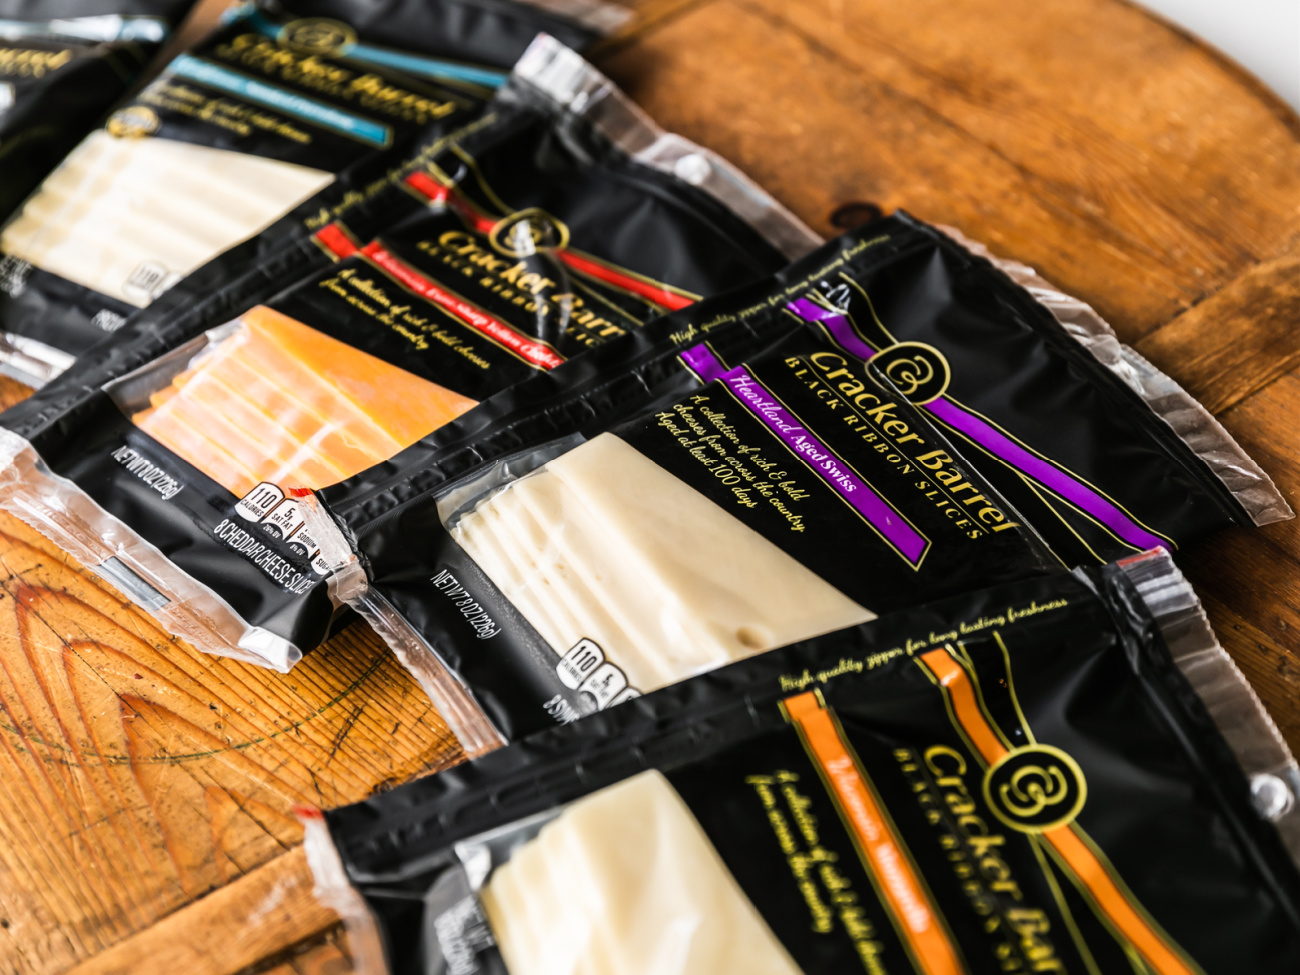 Great Deal On All The Delicious Varieties Of Cracker Barrel Black Ribbon Cheese Slices At Publix on I Heart Publix